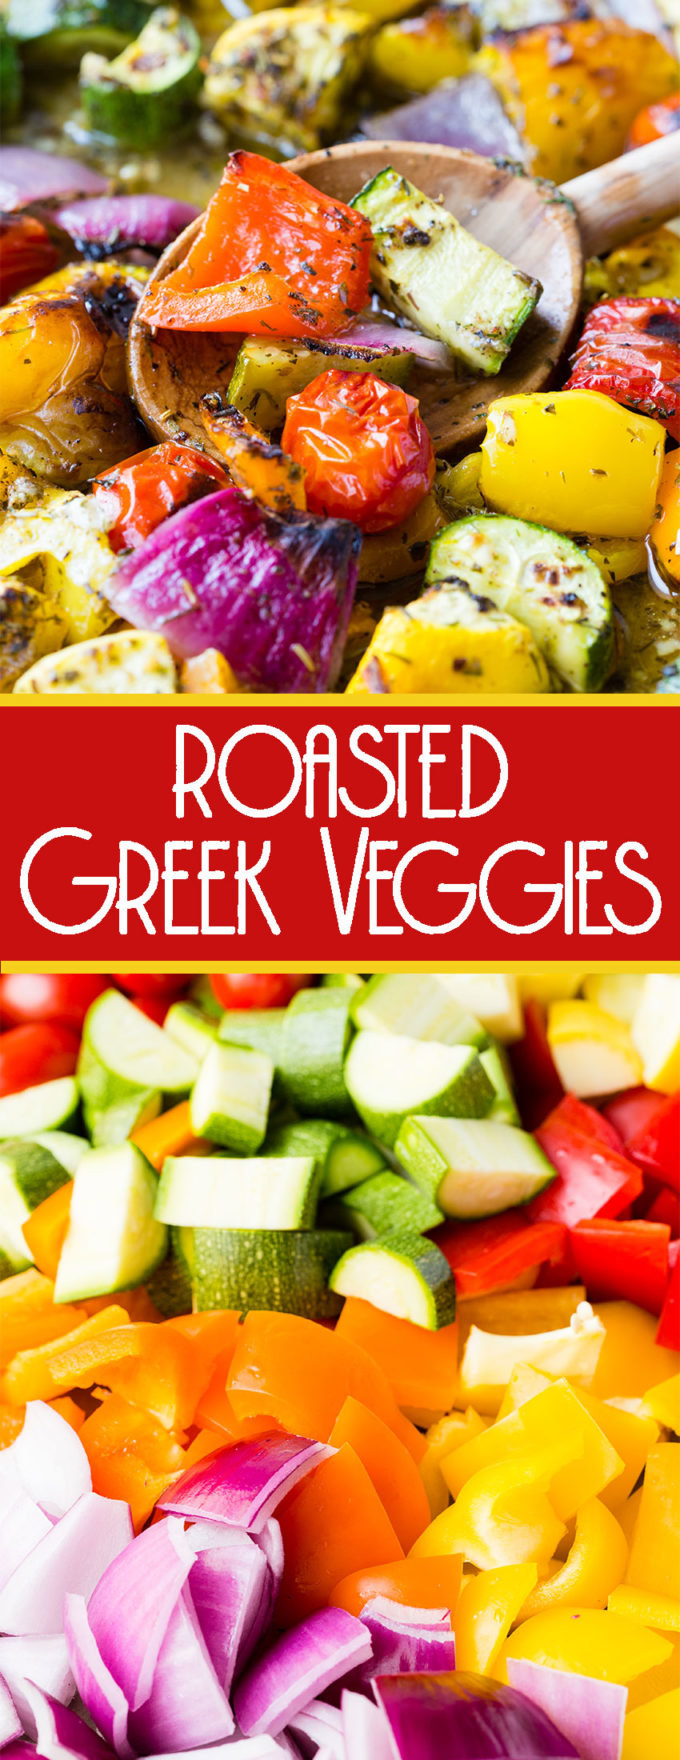 Sheet pan full of roasted greek veggies, so flavorful and delicious. The perfect side dish.